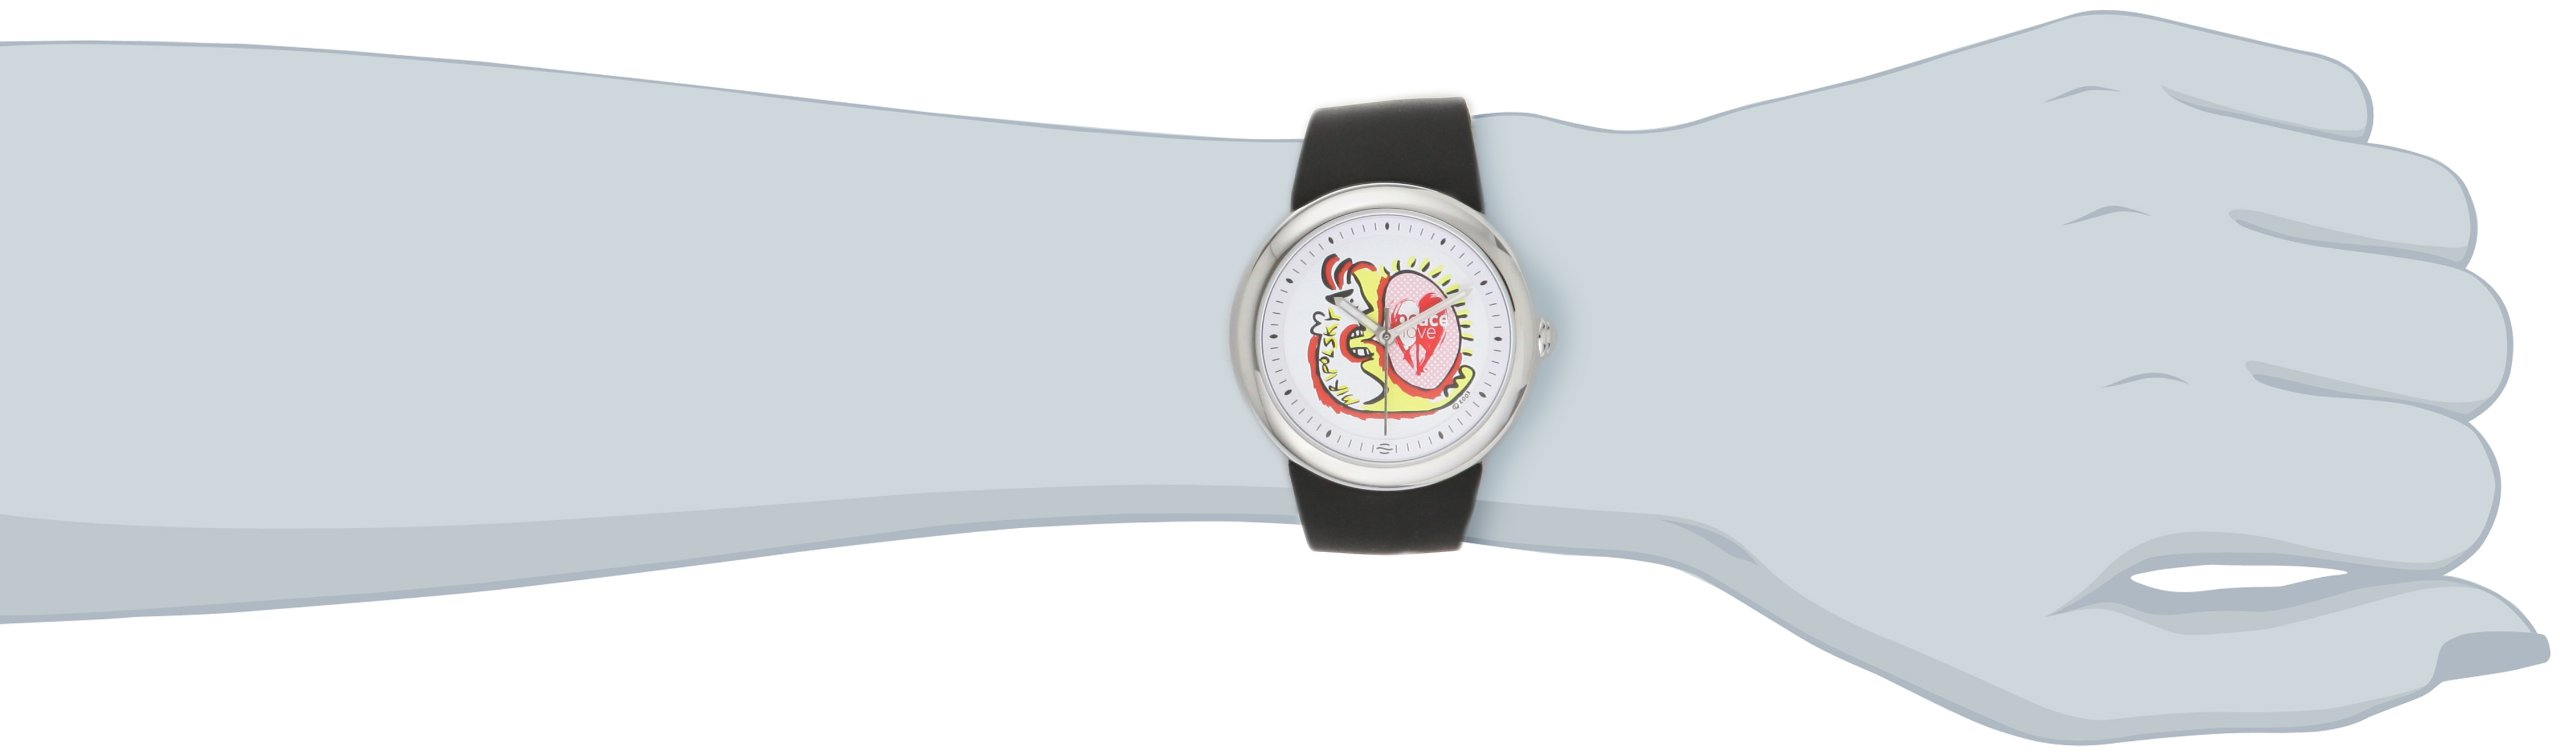 PeaceLove Unisex F36S-PL-B  Round Stainless Steel Black Silicone Strap and ''Miripolsky'' Art Dial Watch by Love & Peace (Image #2)